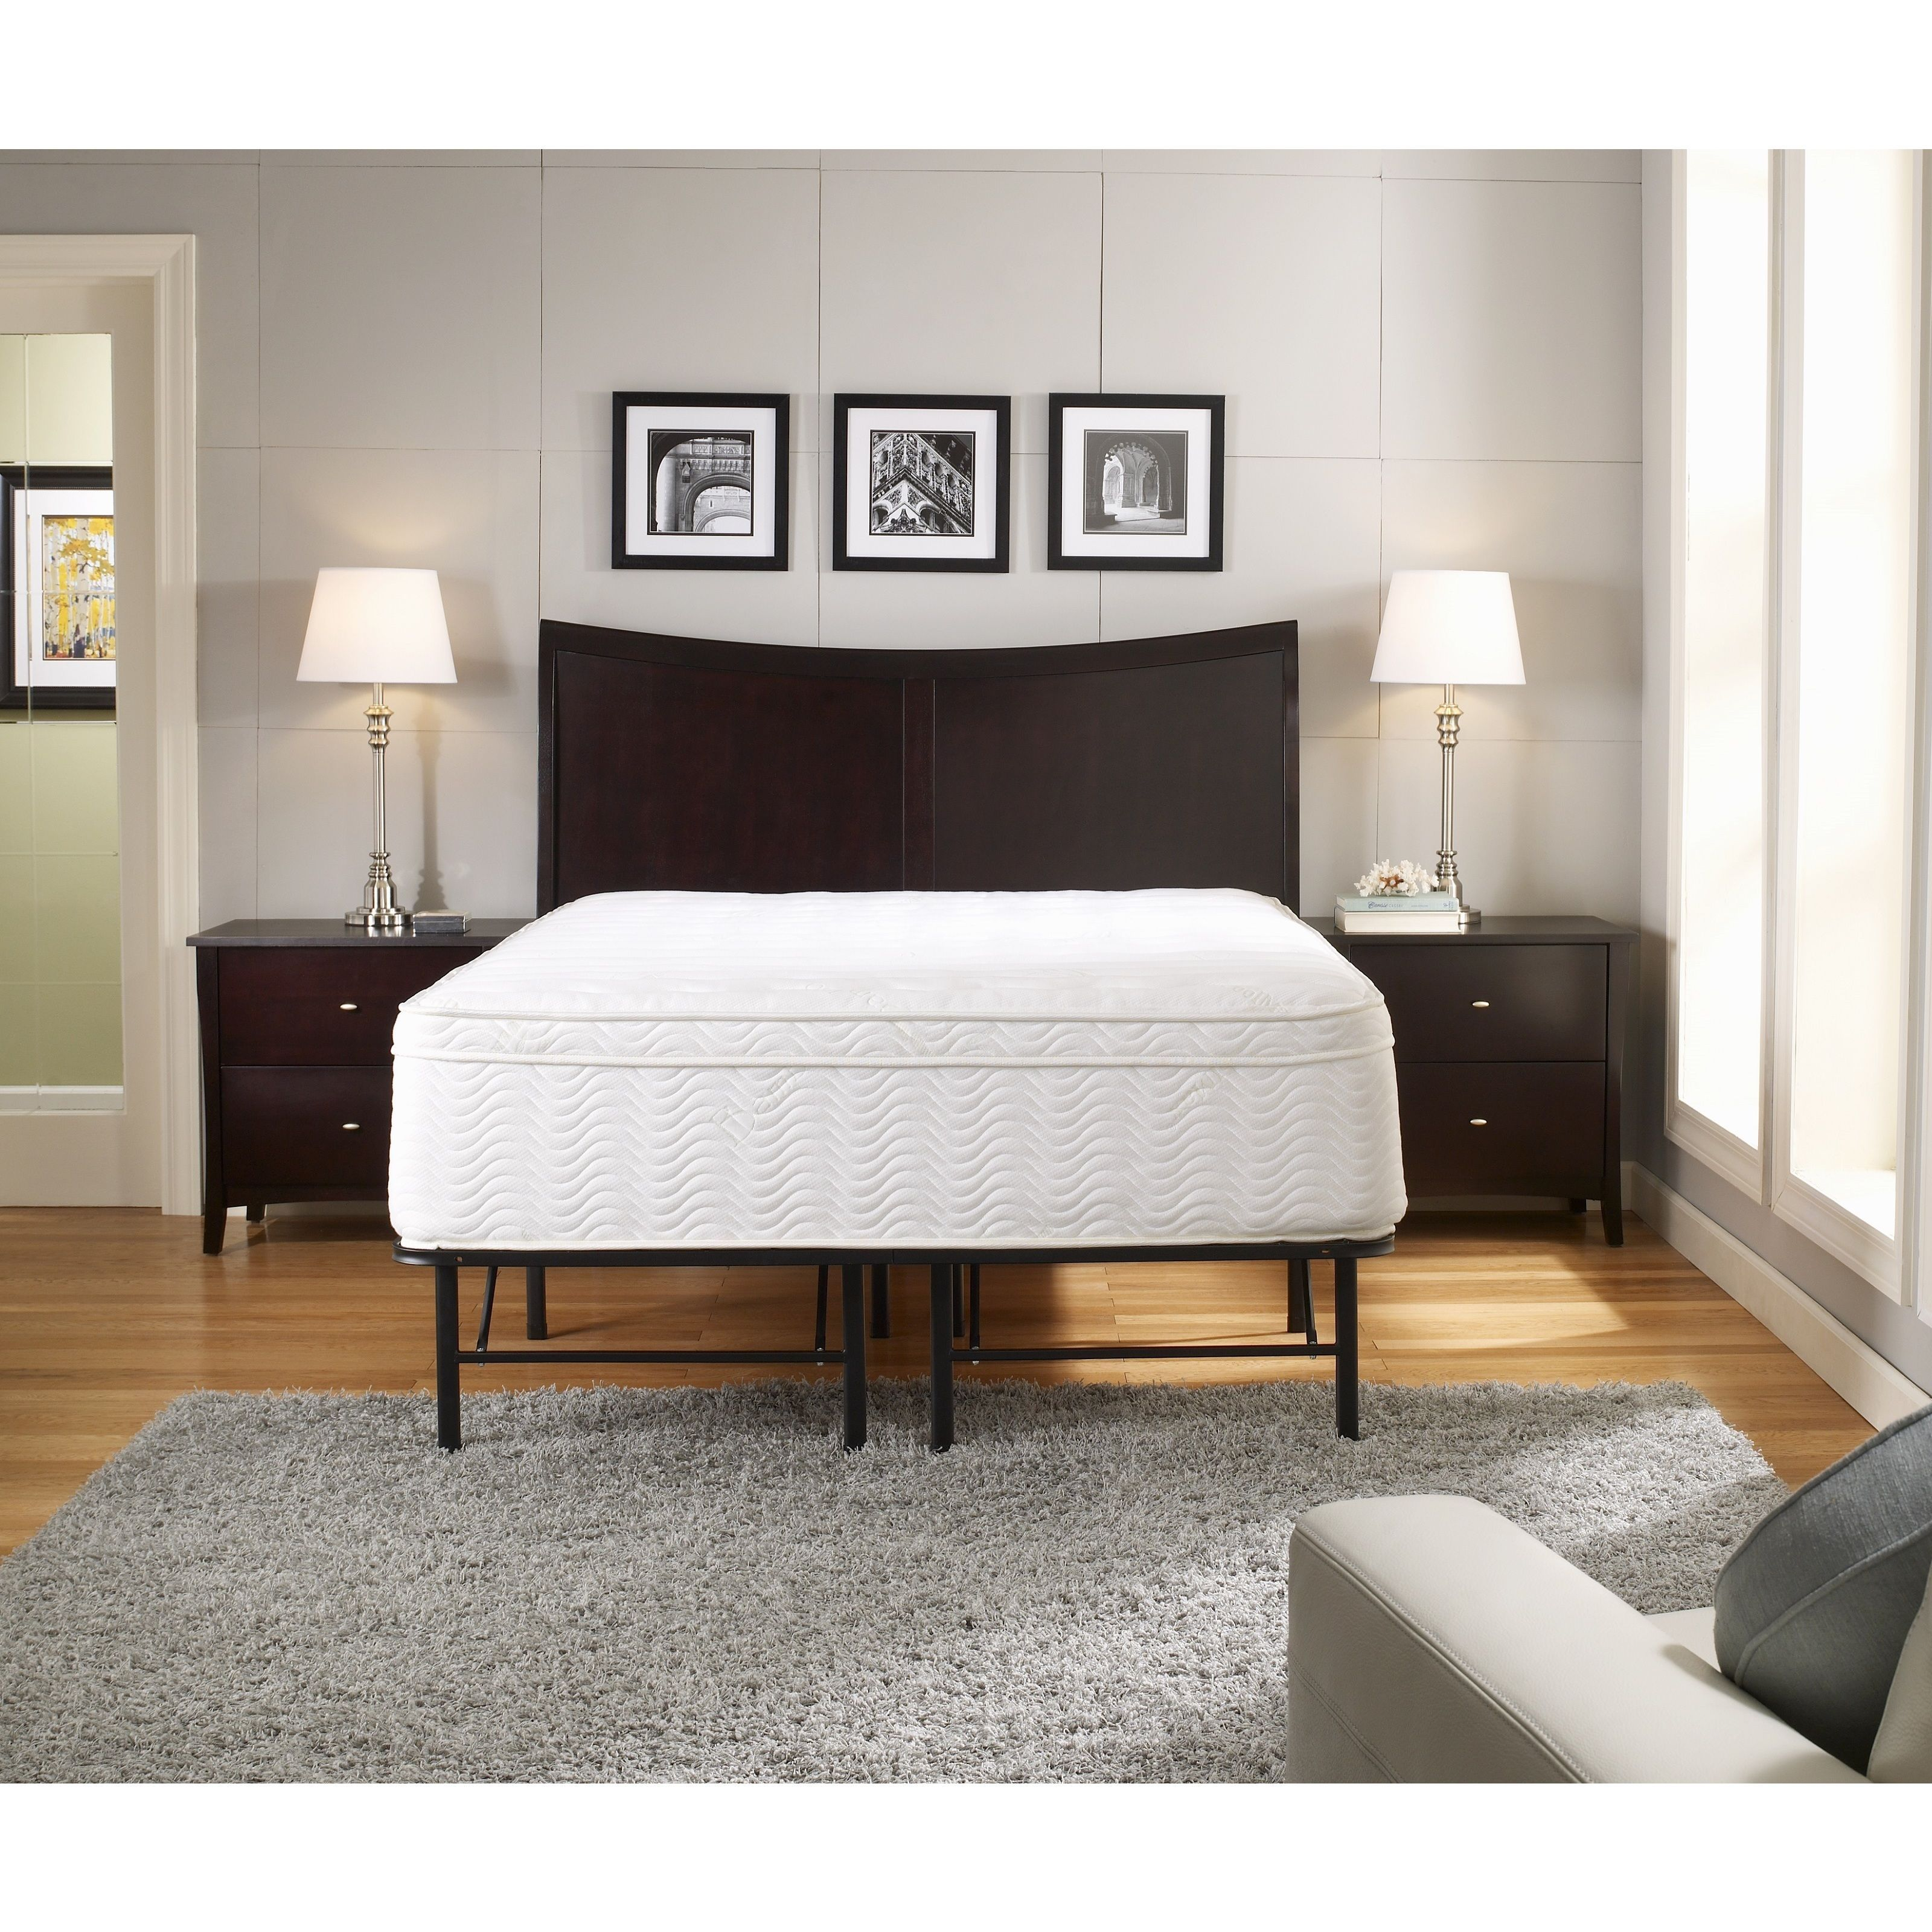 Online Shopping Bedding Furniture Electronics Jewelry Clothing More Bed Frame Metal Platform Bed Steel Bed Frame